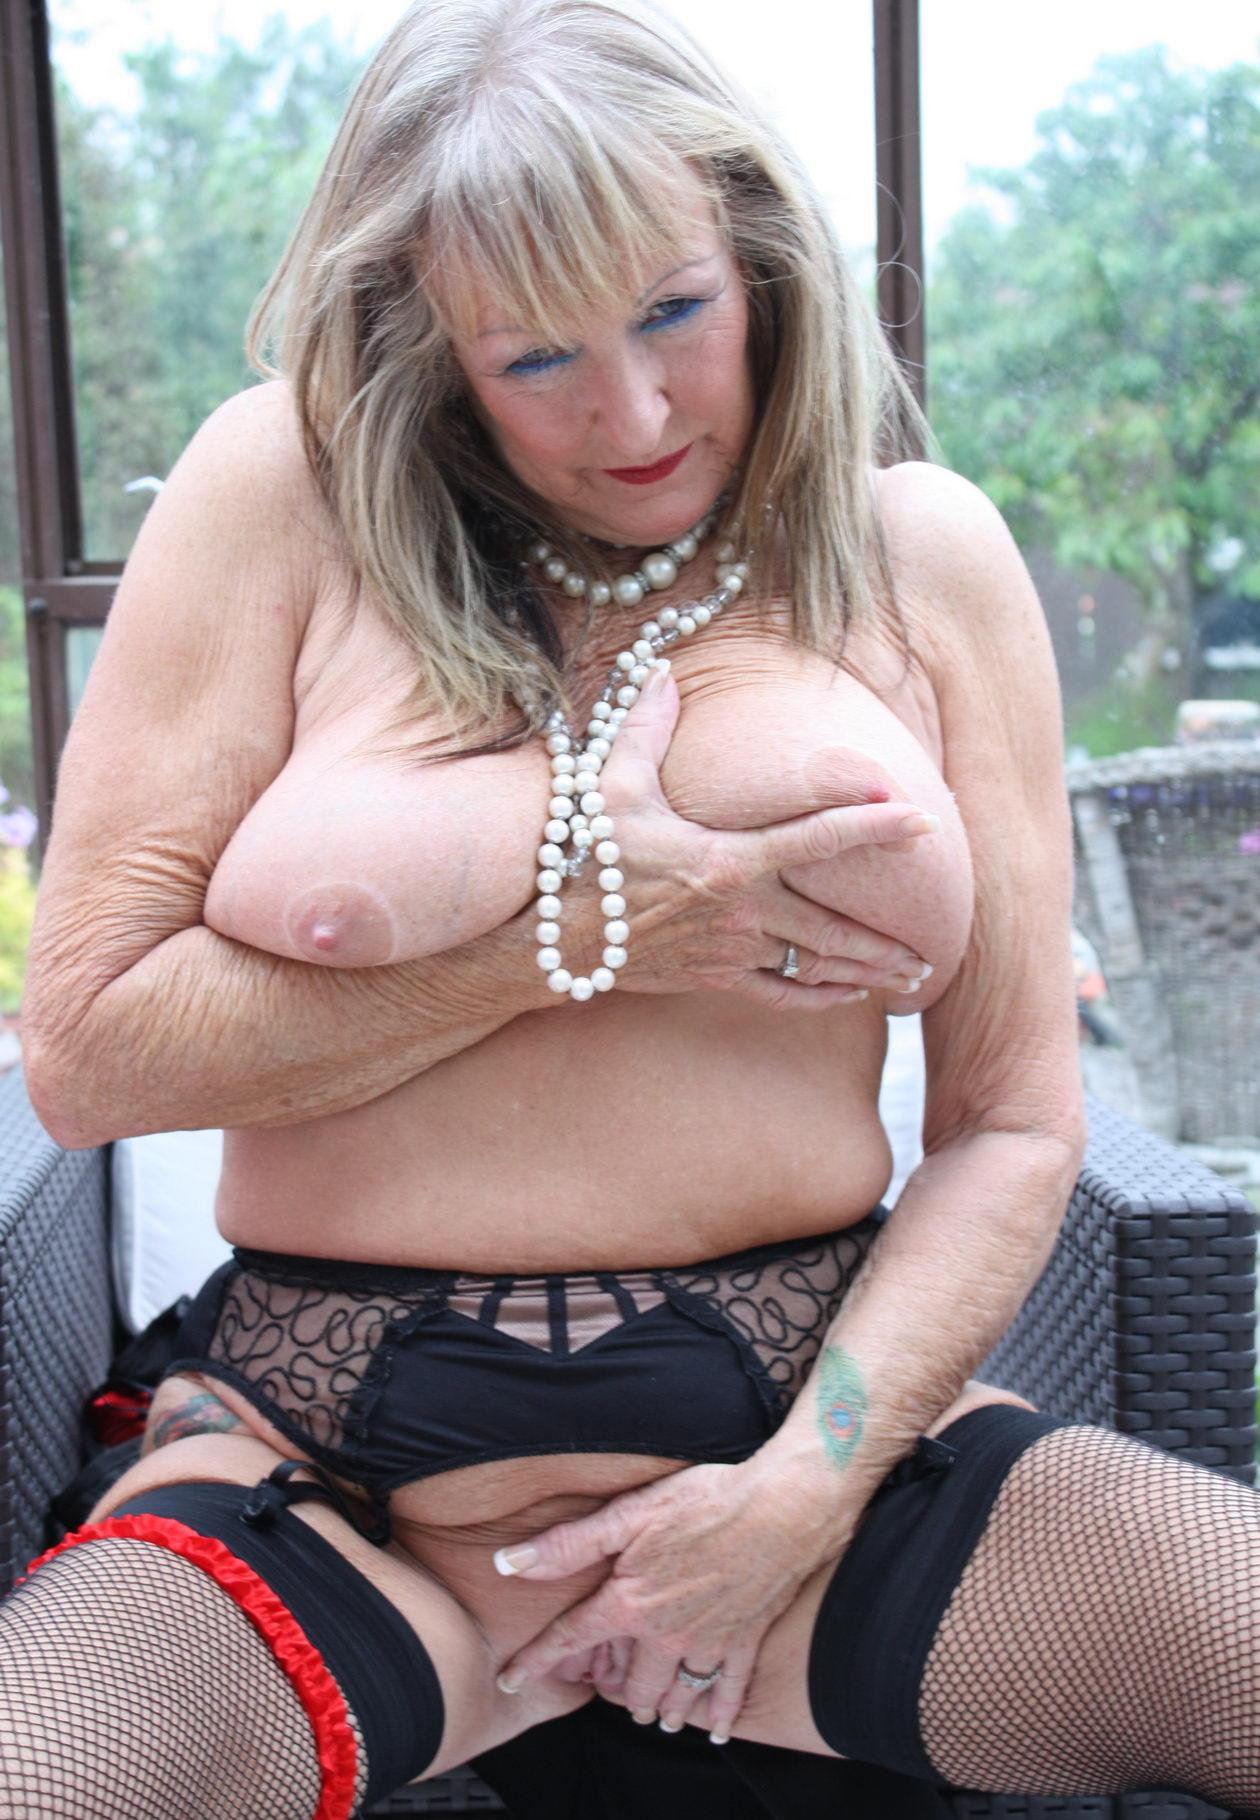 Makenzie ,a  anal addicted granny who gladly accepts offers to do hard sex teaching